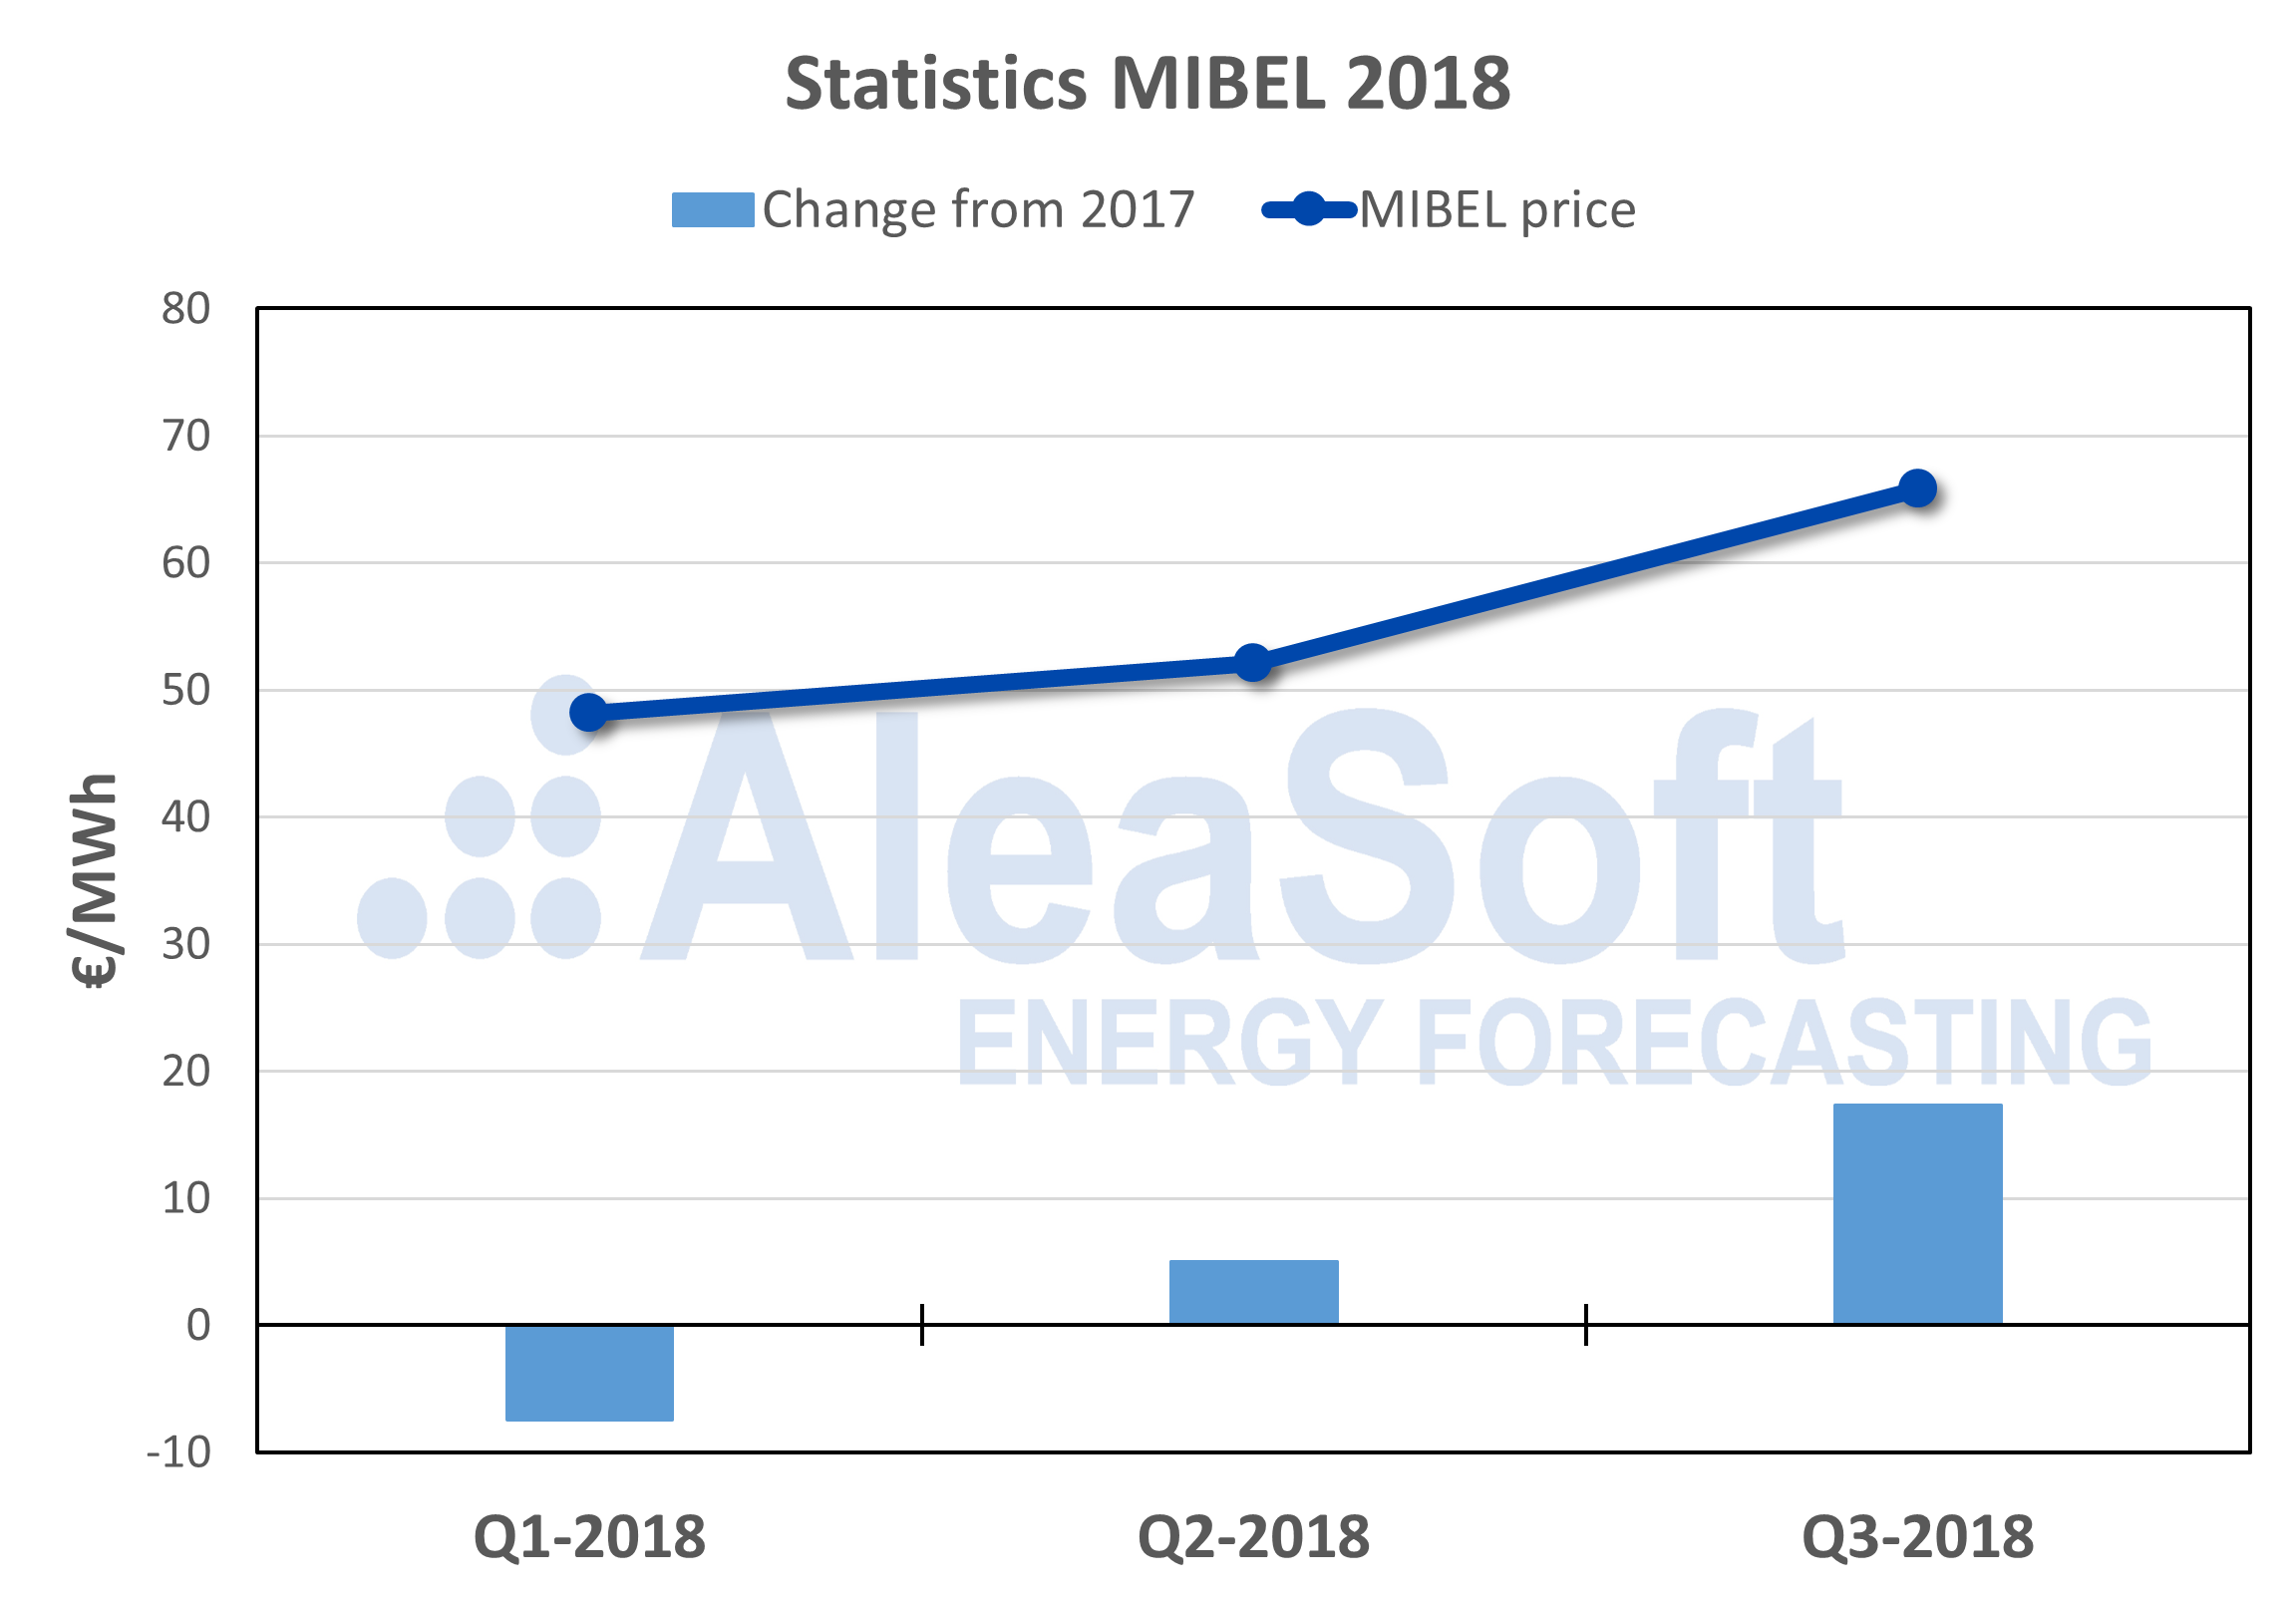 AleaSoft - Electricity market price MIBEL 2018